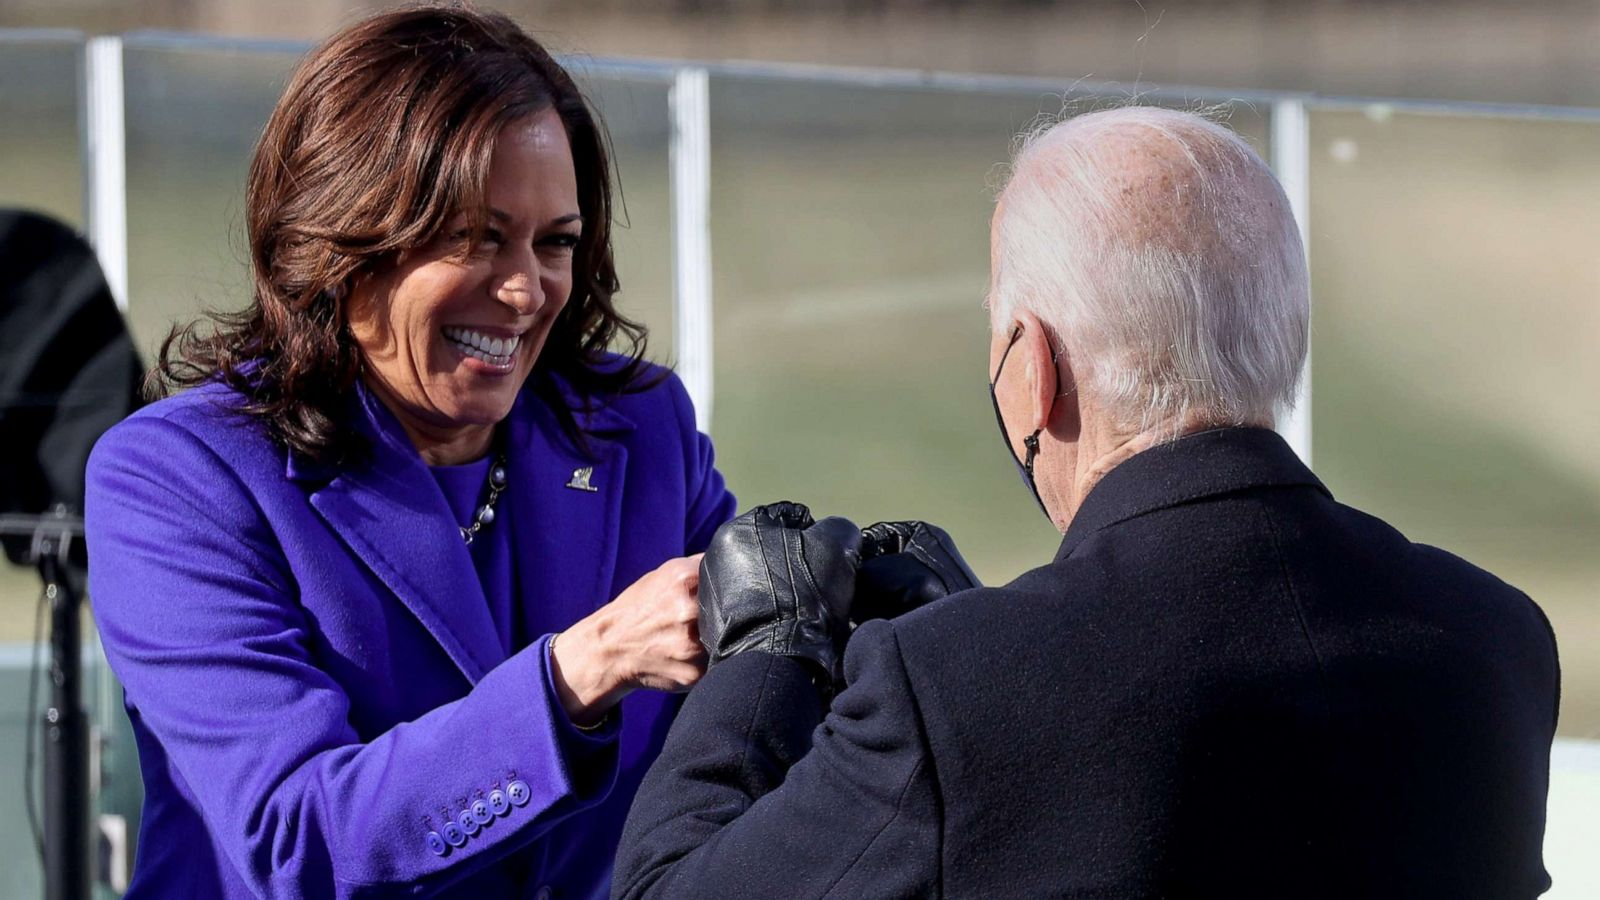 Joe Biden, Kamala Harris send 1st tweets from official White House accounts - ABC News